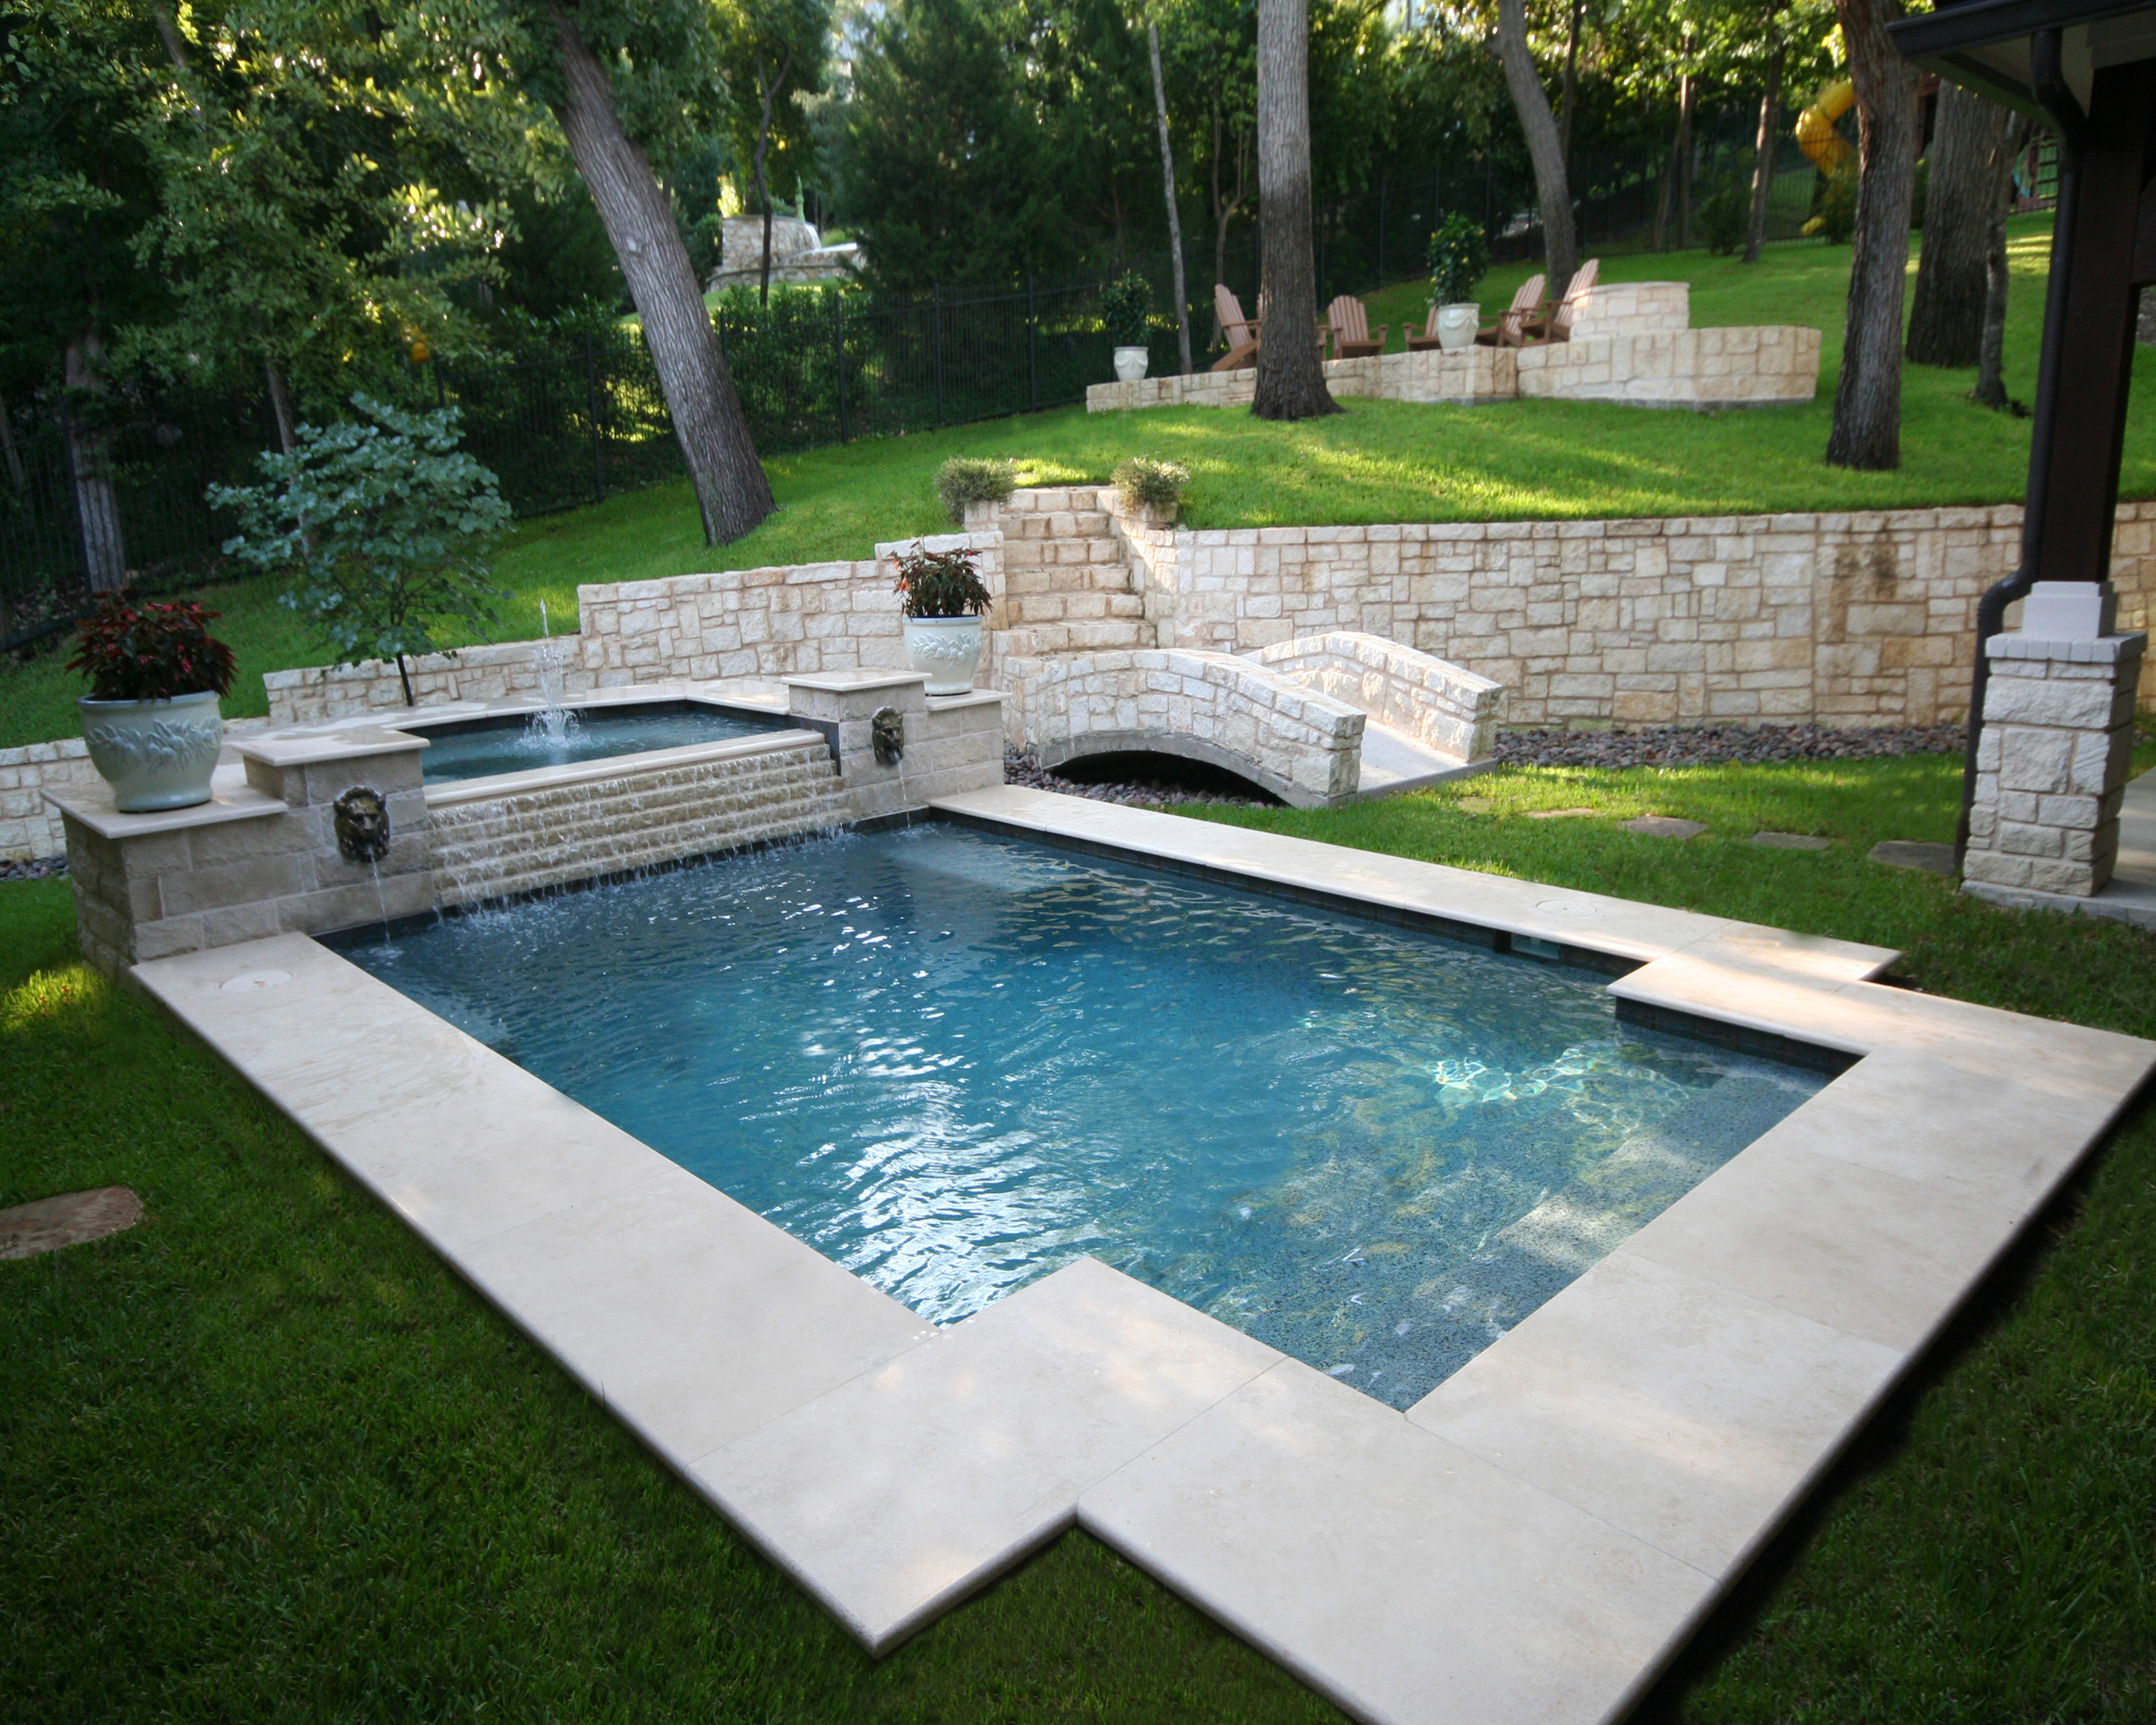 Cool Backyard Pool Designs for Your Outdoor Space: Pool Ideas For Small Backyards | Backyard Pool Designs | Underground Swimming Pools